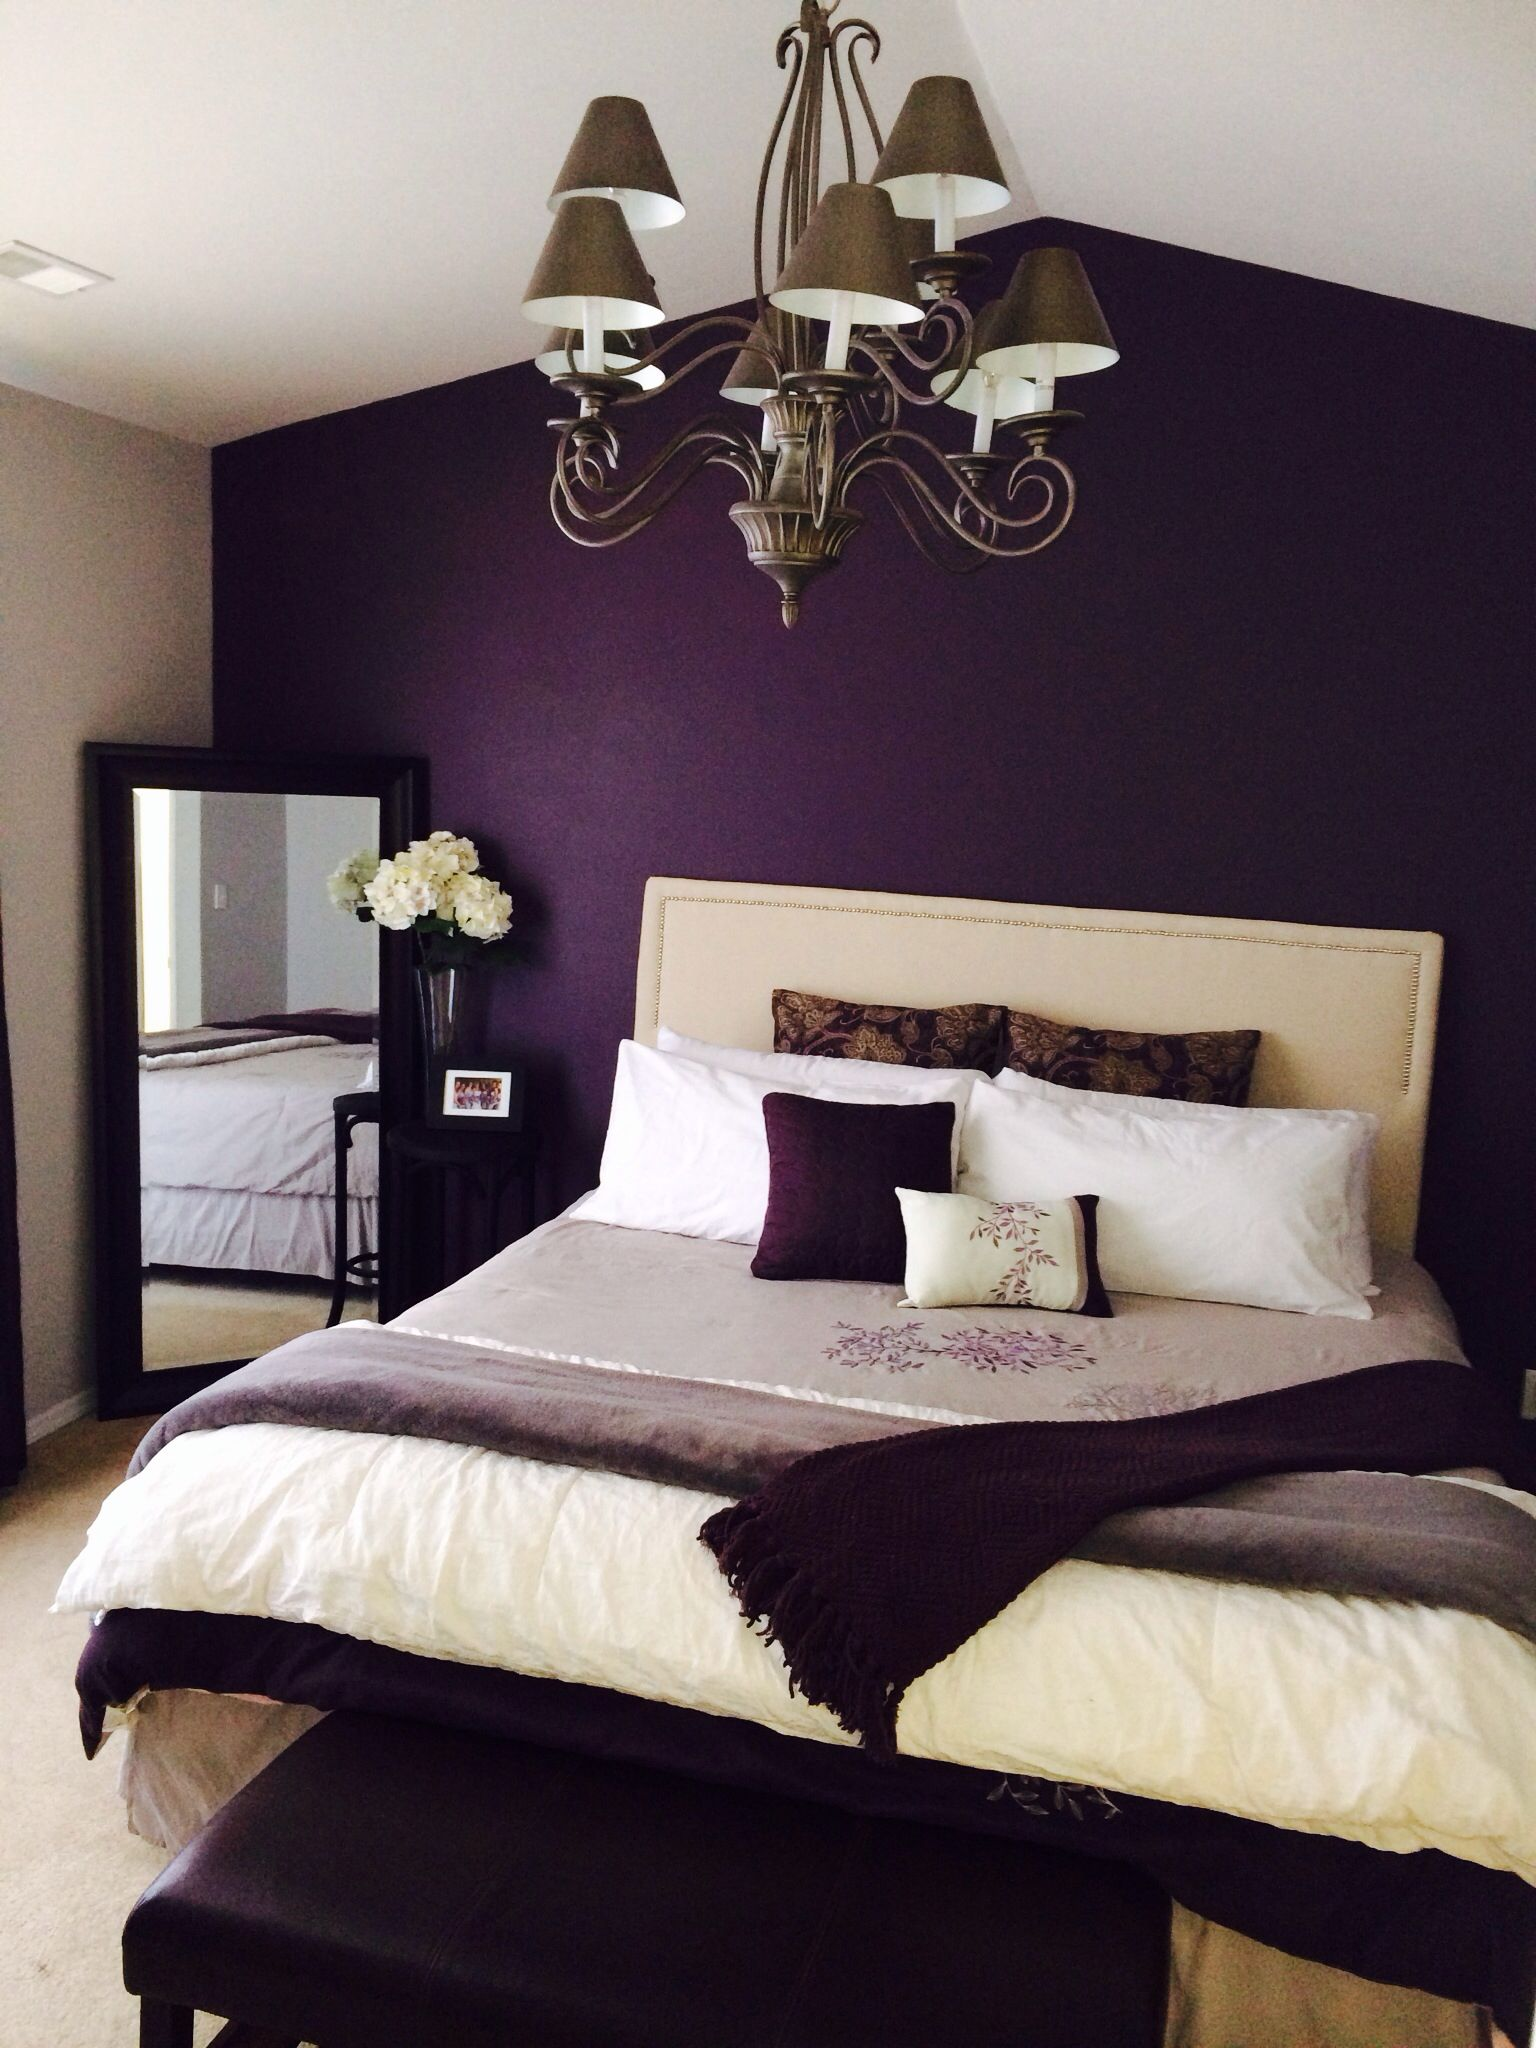 Bedroom Decorating Ideas In Purple latest 30 romantic bedroom ideas to make the love happen